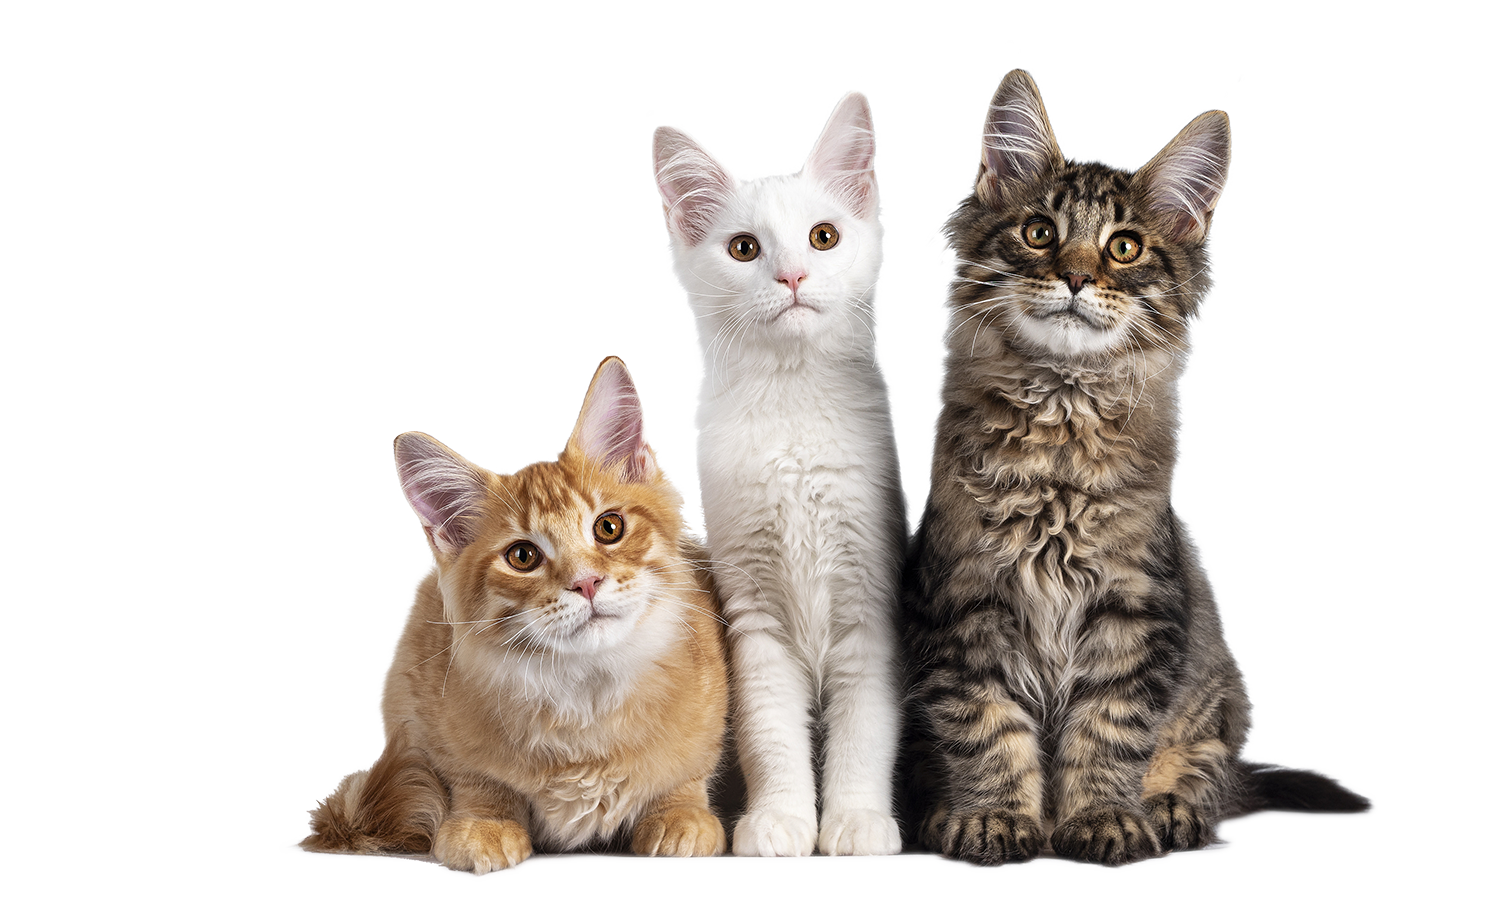 https://www.thecatclinic.sg/wp-content/uploads/bigstock-Red-Solid-White-And-Black-Tab-398785061.png